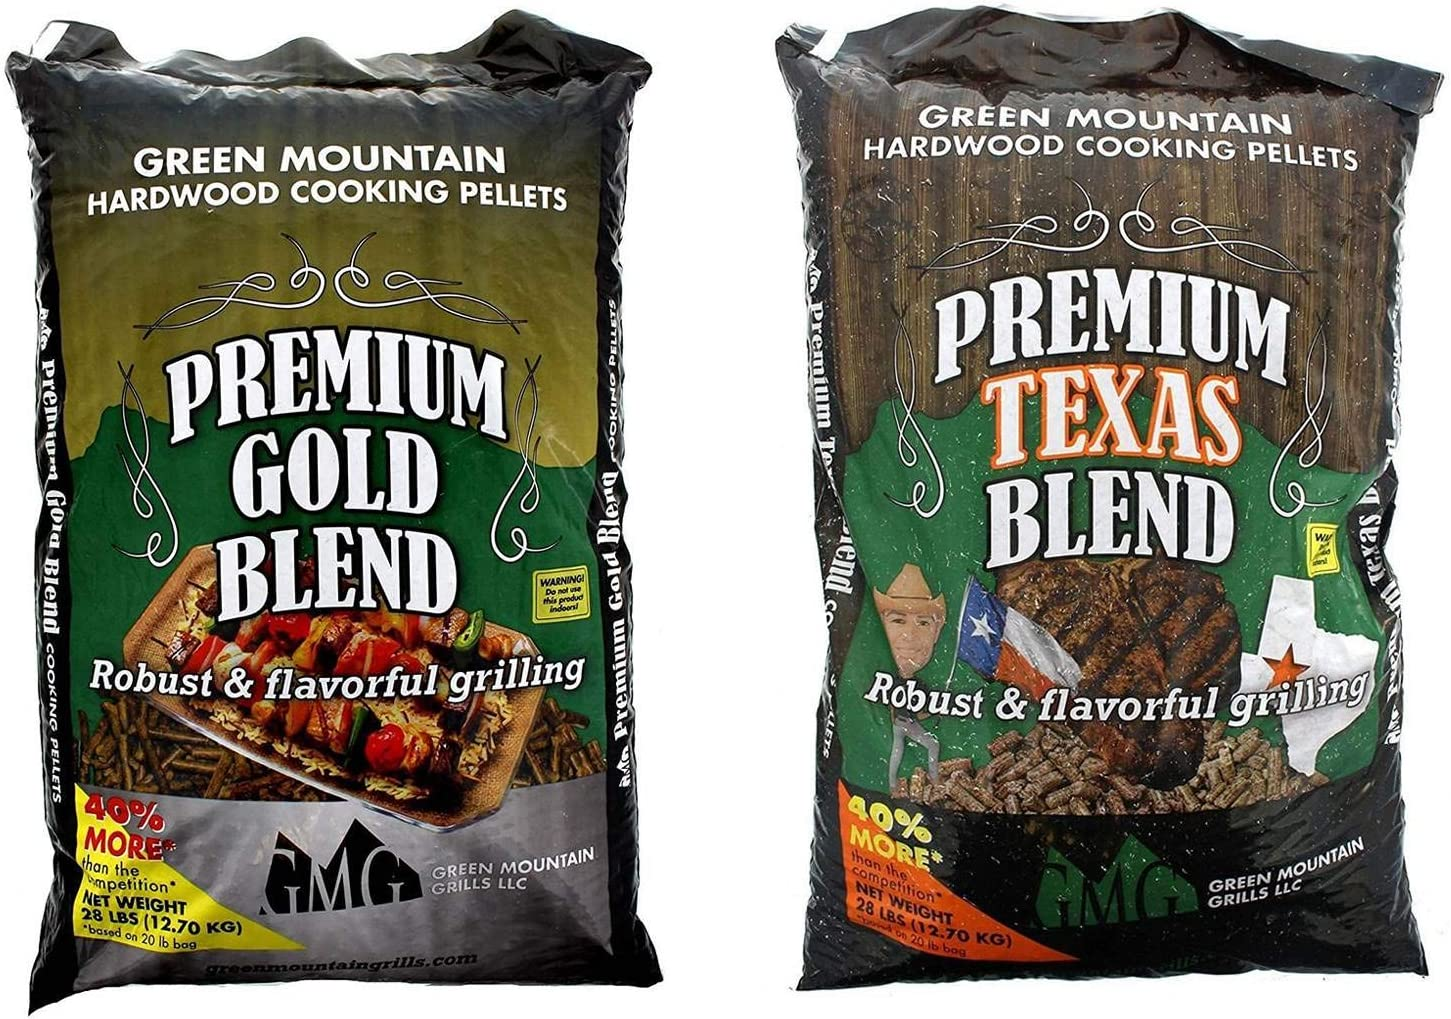 Green Mountain Premium Gold Blend Grilling Pellets, Premium Texas Blend Pellets